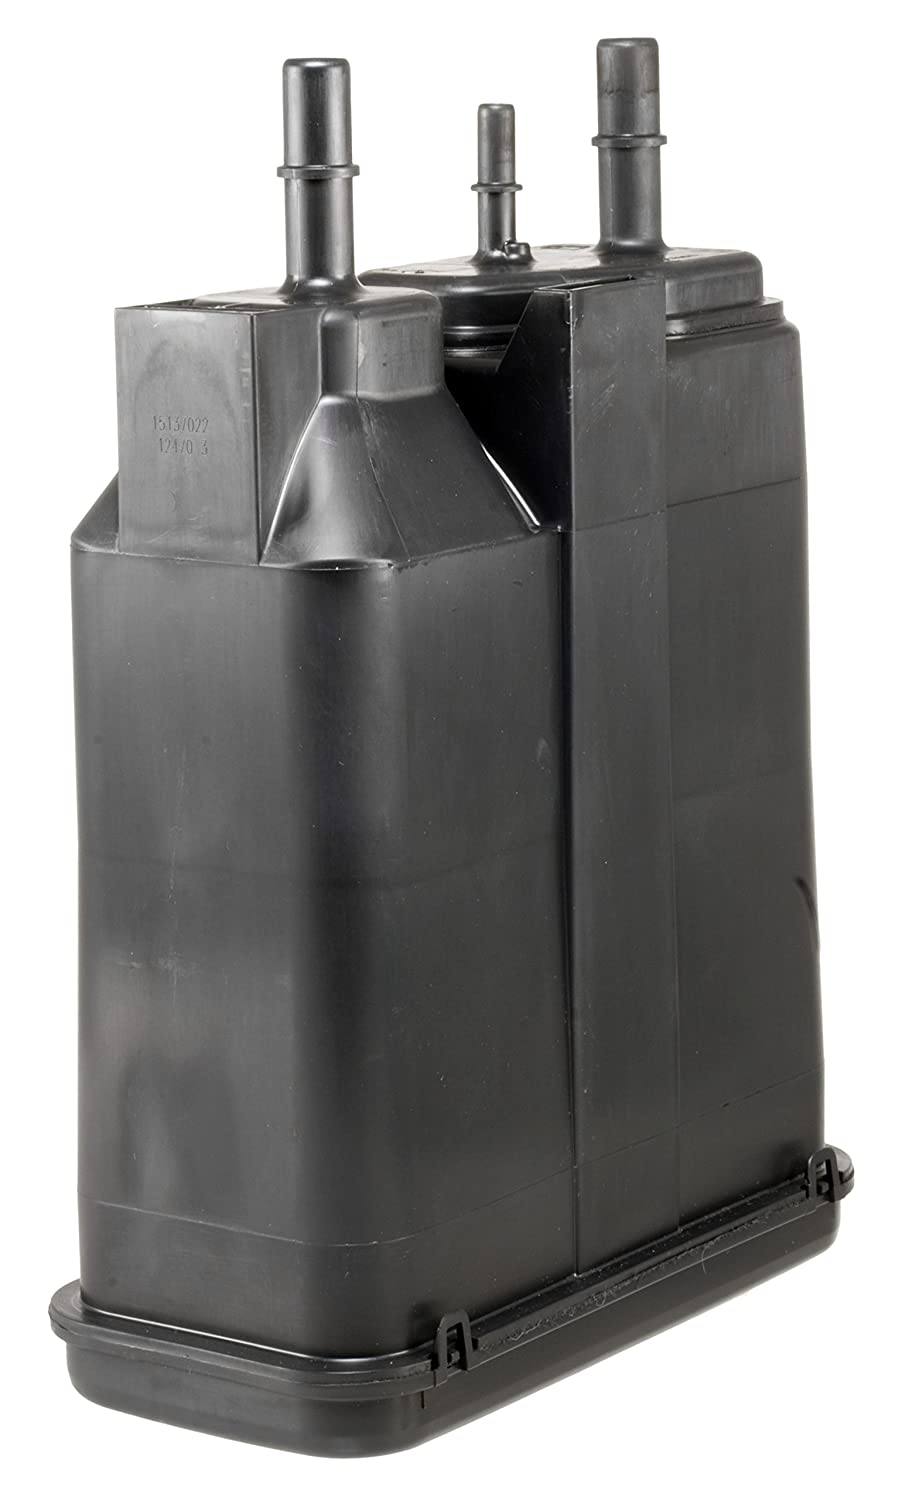 Wells VC4115 Vapor Canister